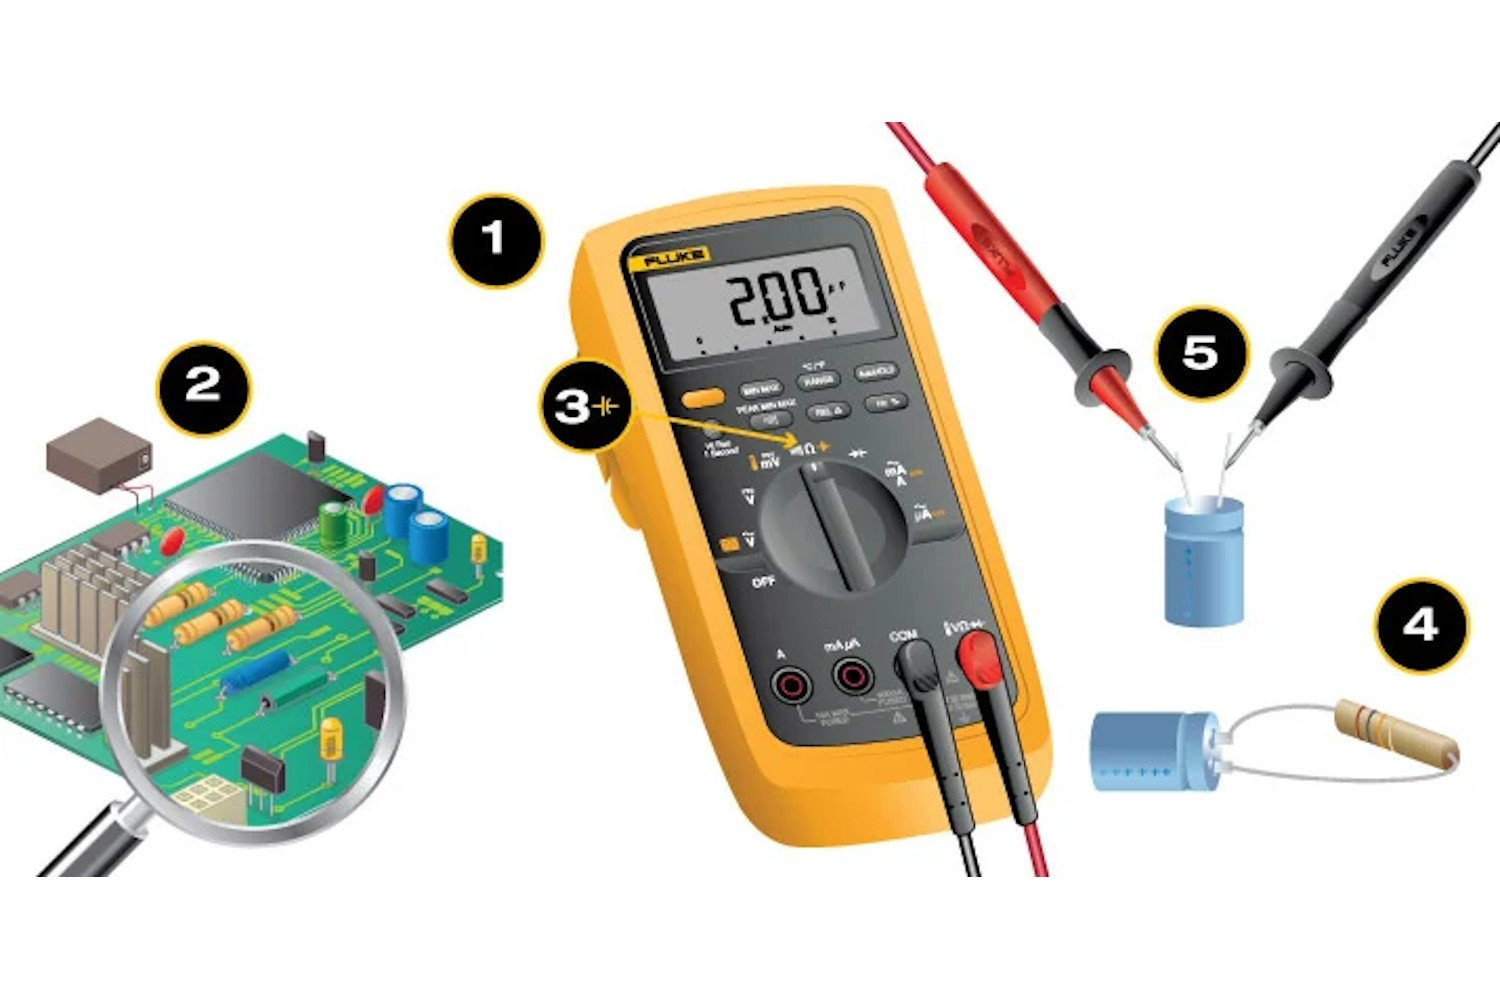 Steps for measuring capacitance with a digital multimeter